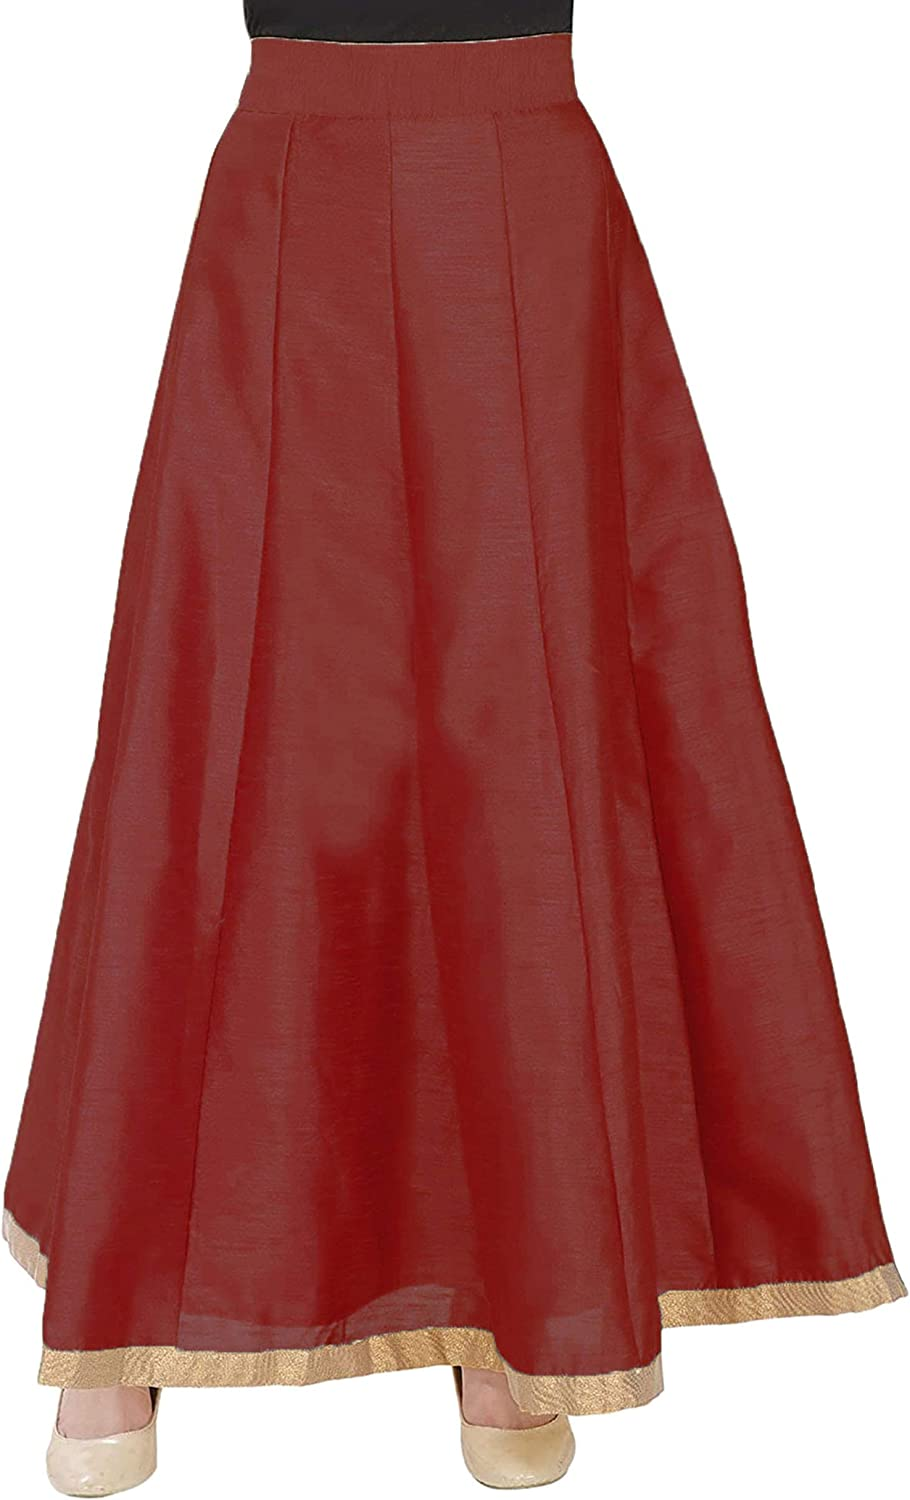 Women Solid with Border Dupion Silk Skirt Free Size Party Night Club Cocktail Party Gift